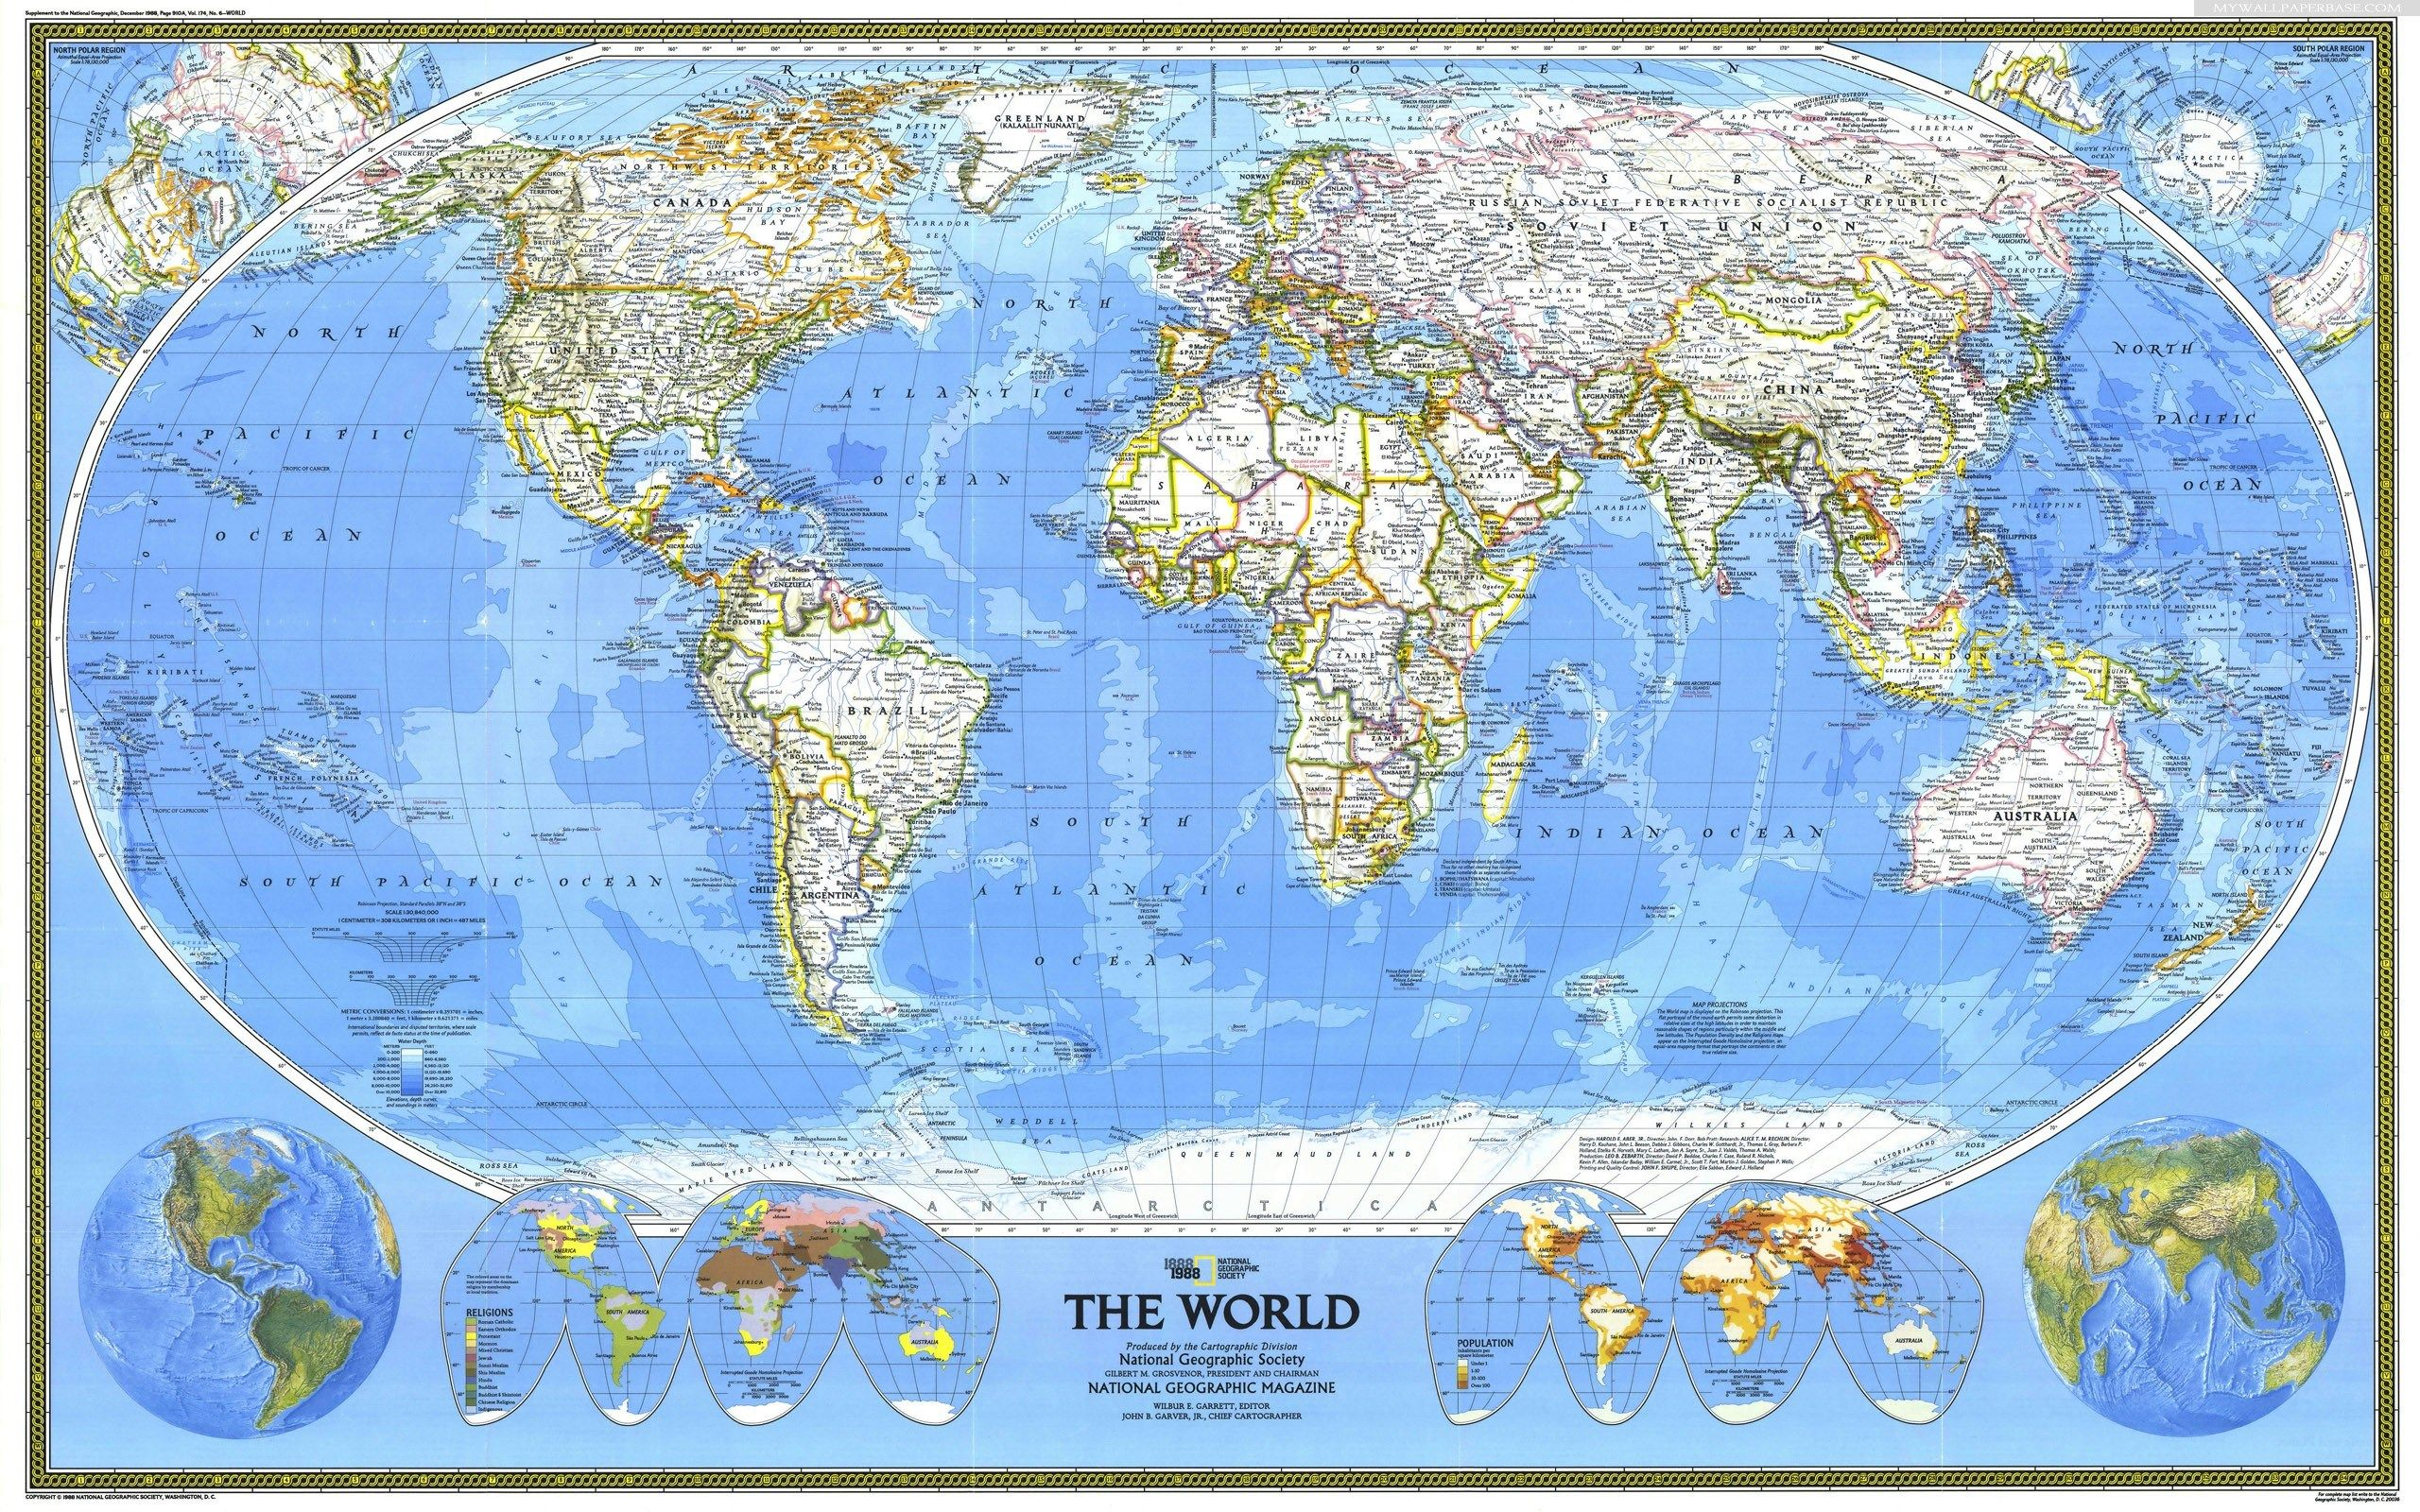 2560x1600px world map pc backgrounds hd by webber walls 2560x1600px world map pc backgrounds hd by webber walls gumiabroncs Image collections